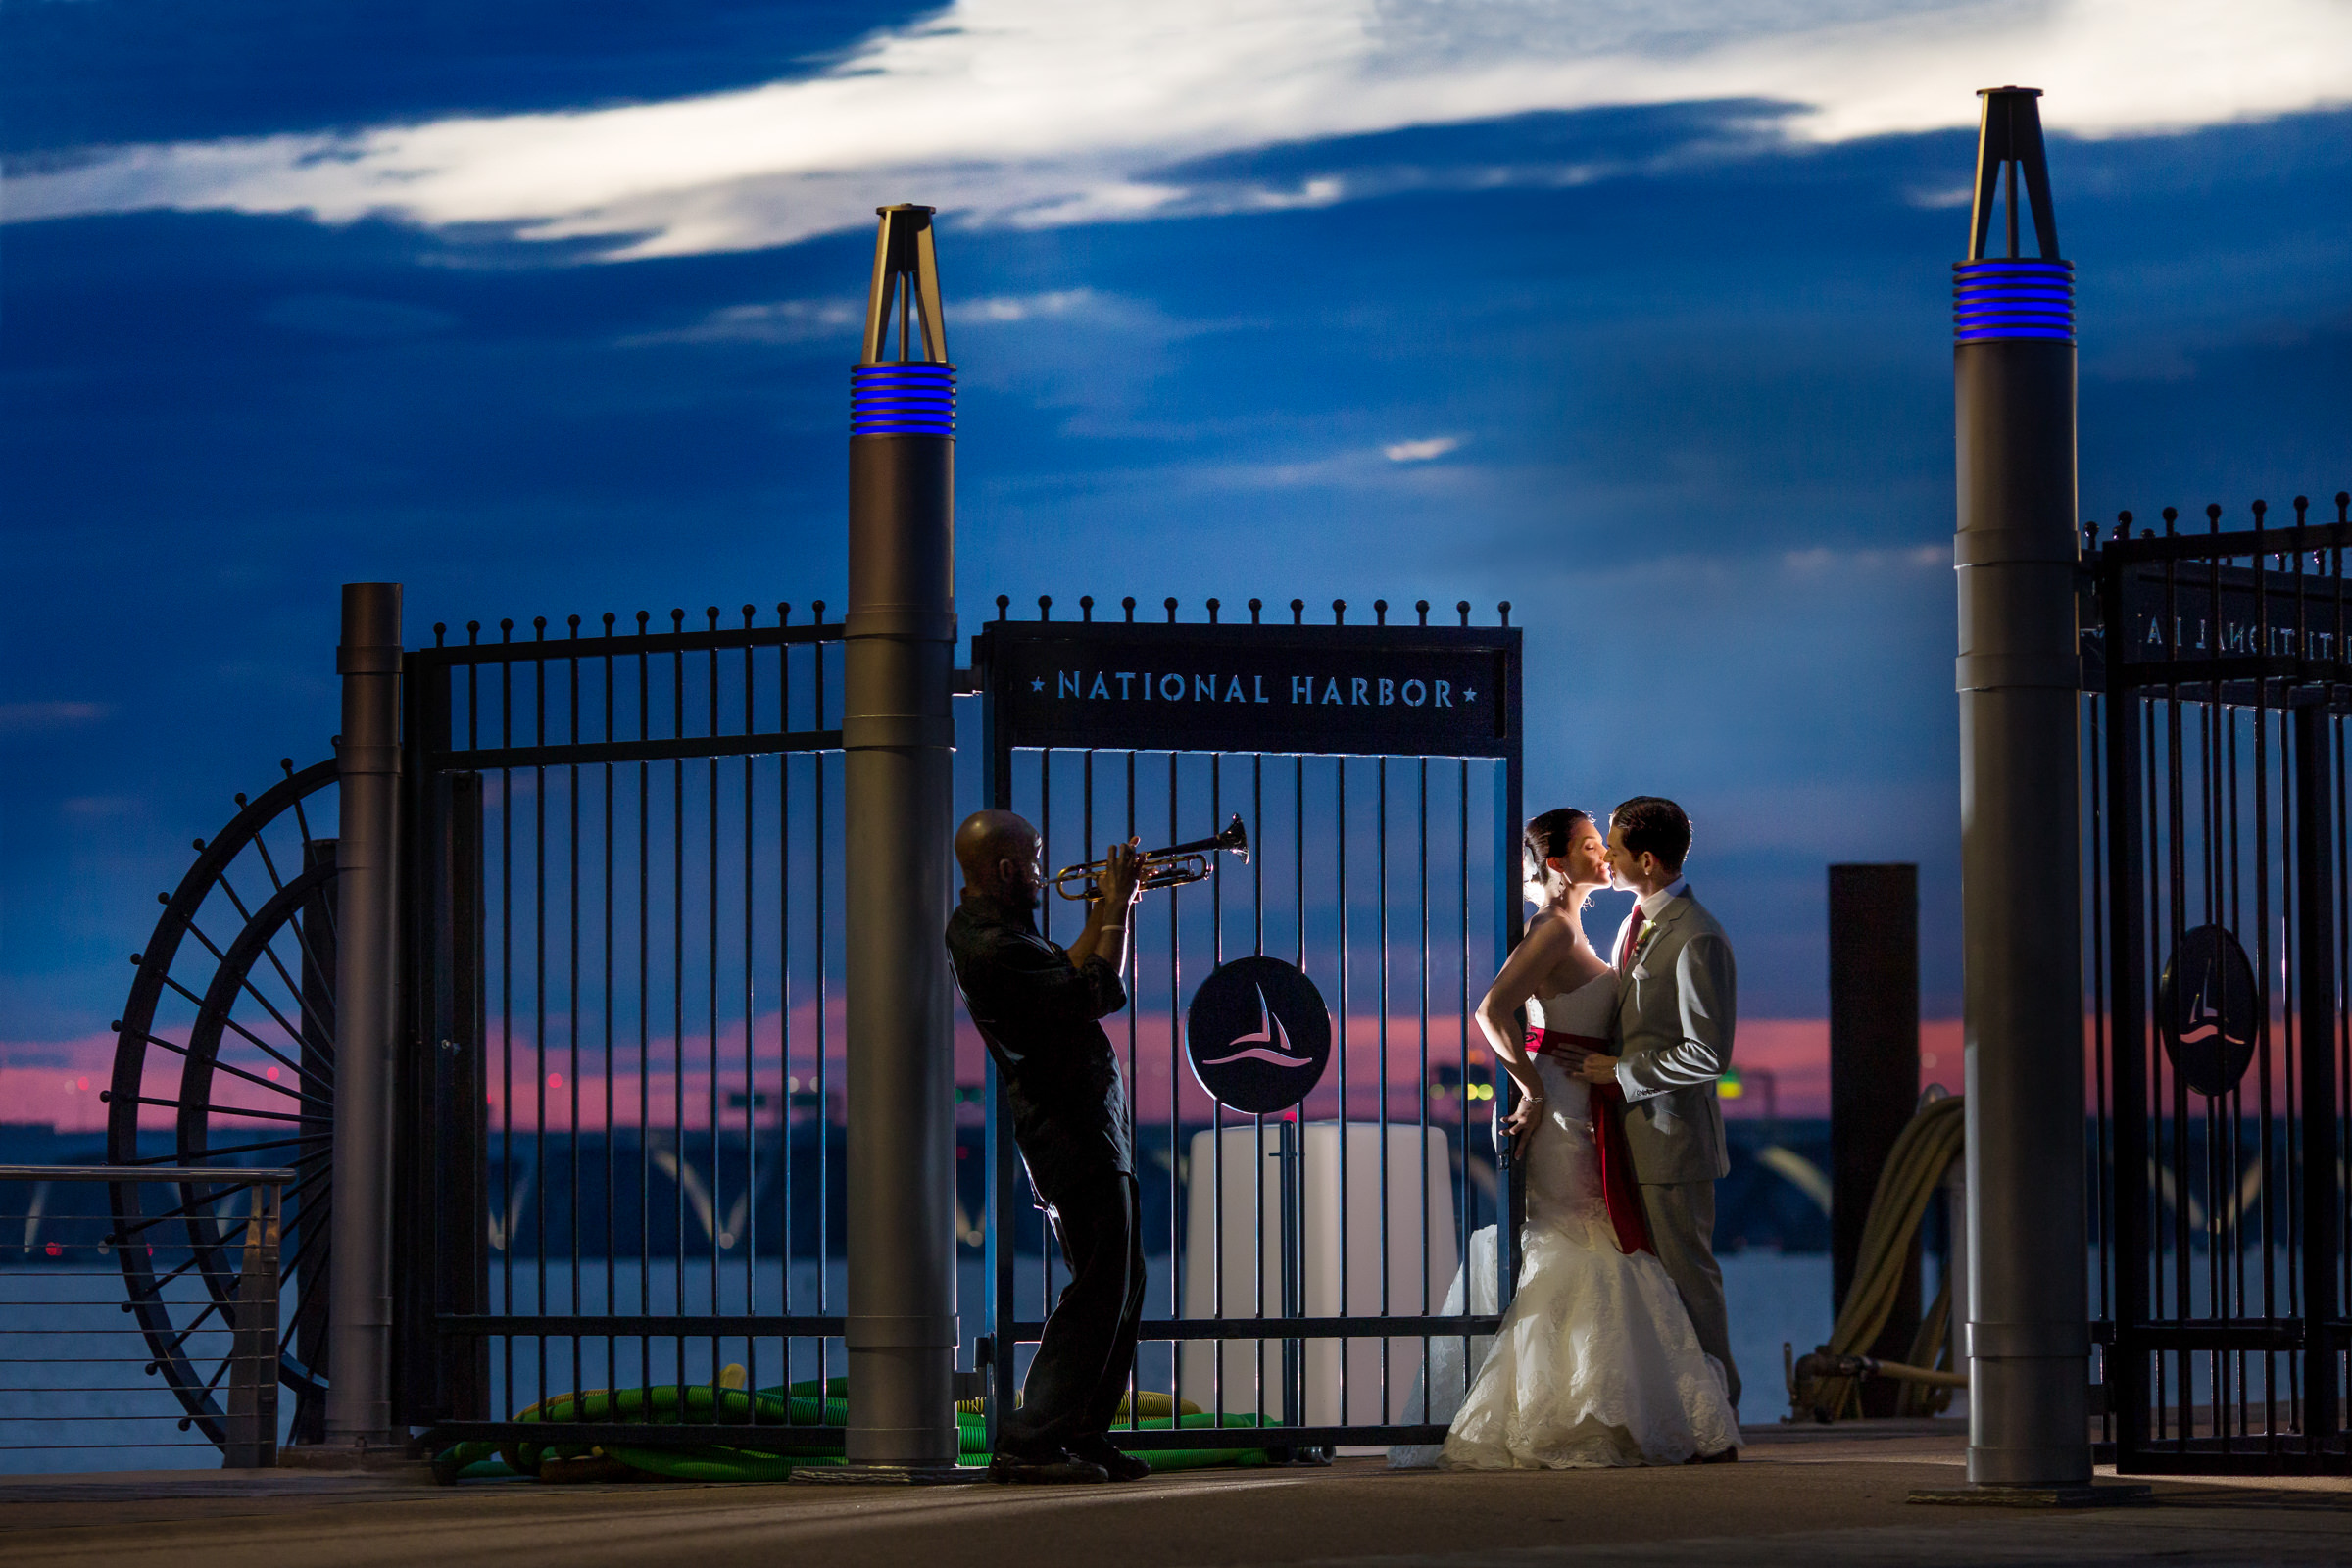 trumpeter-serenades-couple-at-national-harbor-gate-at-sunset-photo-by-procopio-photography